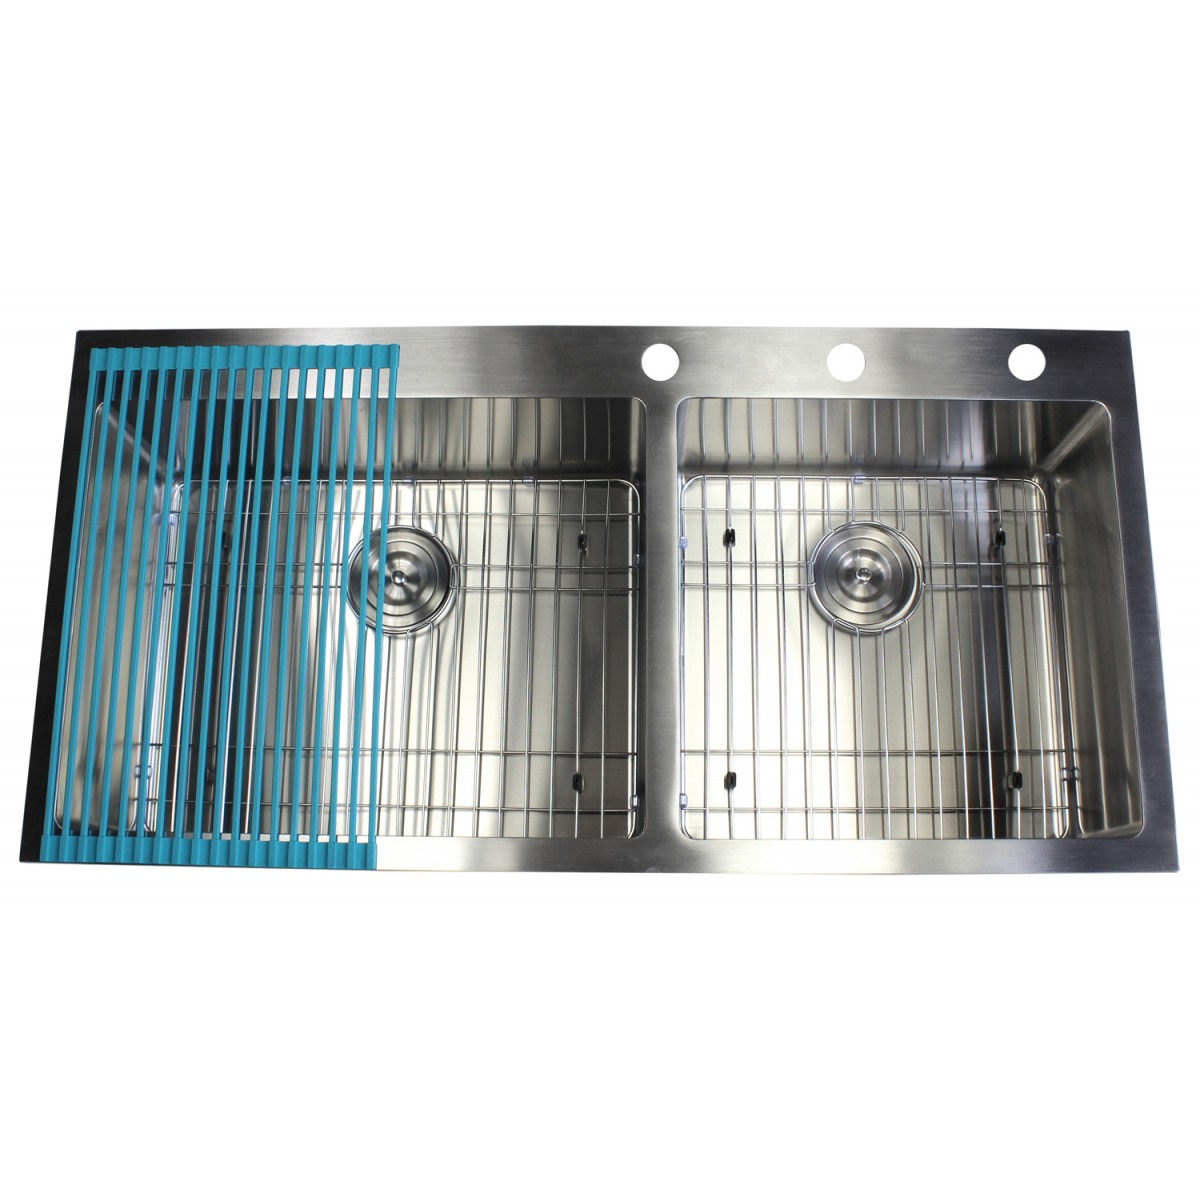 100 42 Stainless Steel Sink 42 Ariel 42 Inch Stainless